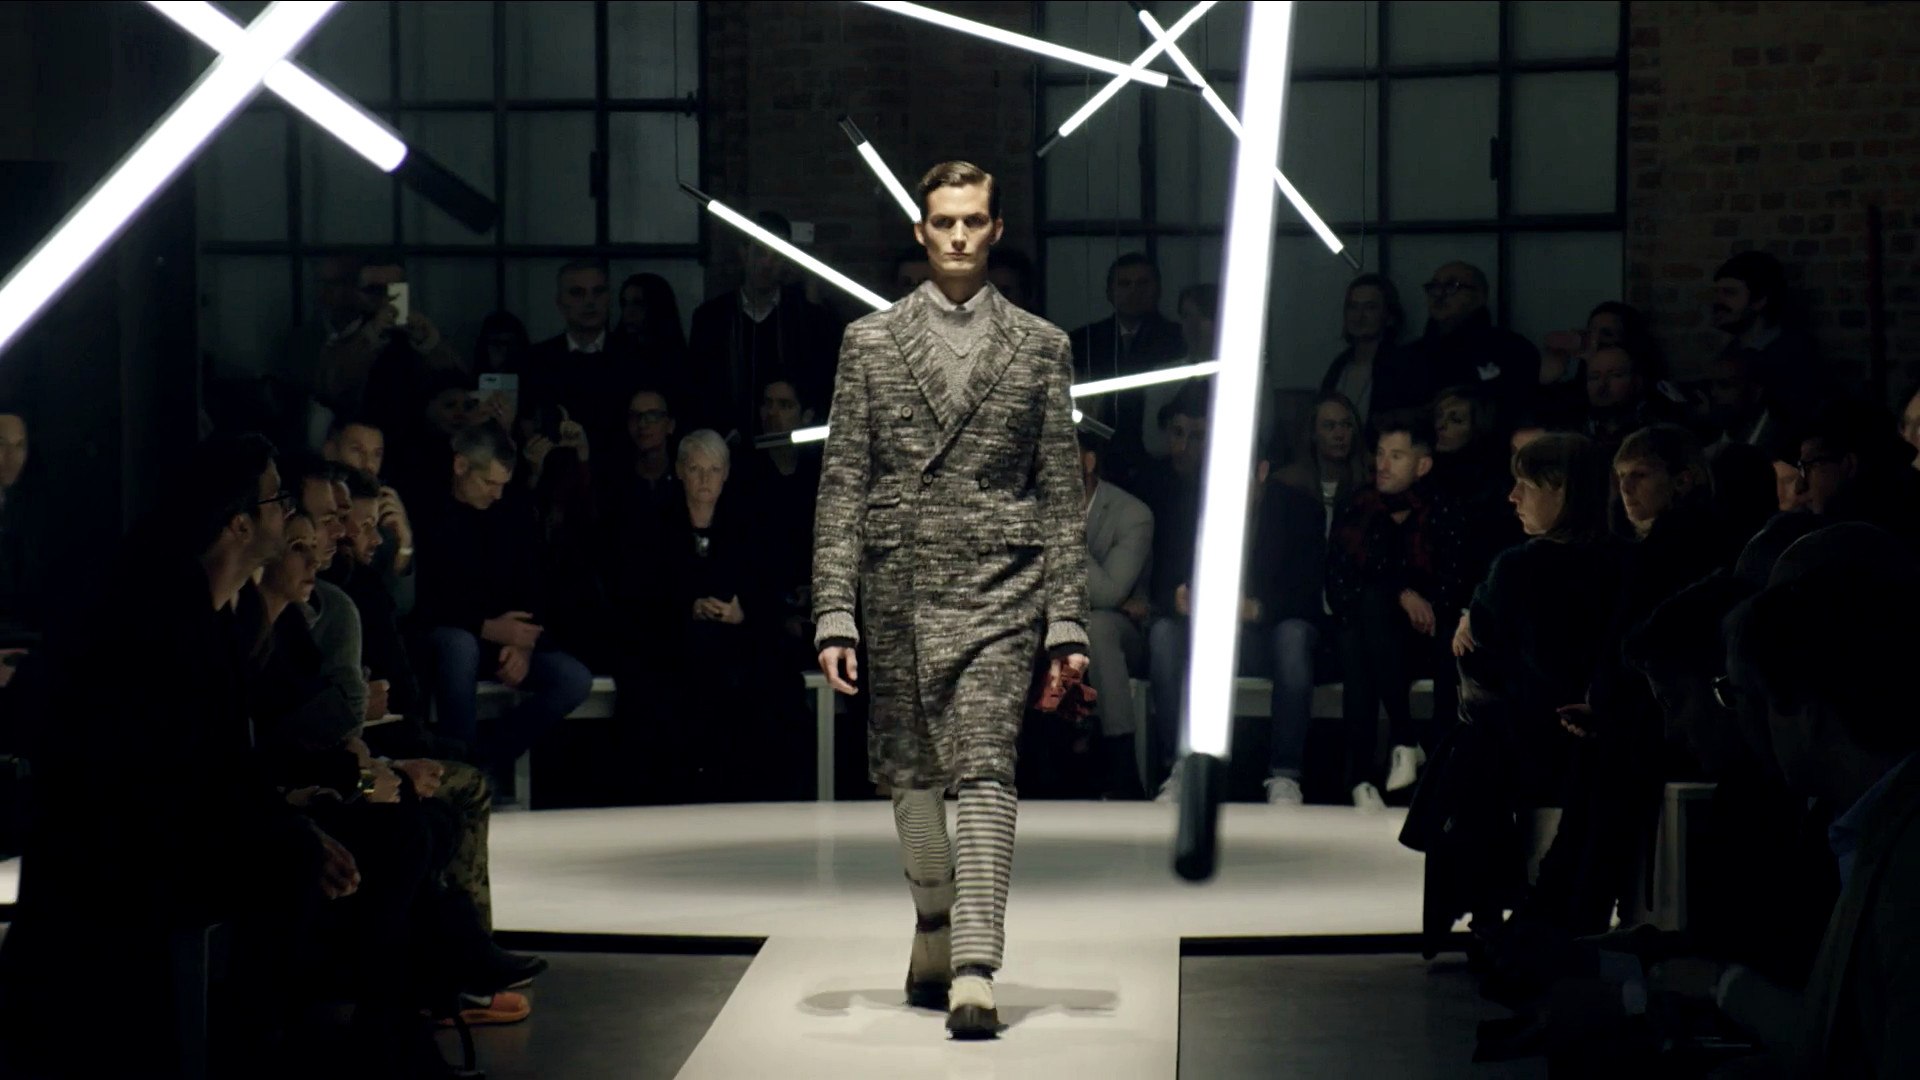 Canali Fall Winter 2015-16 Men's Fashion Show - Milan Fashion Week